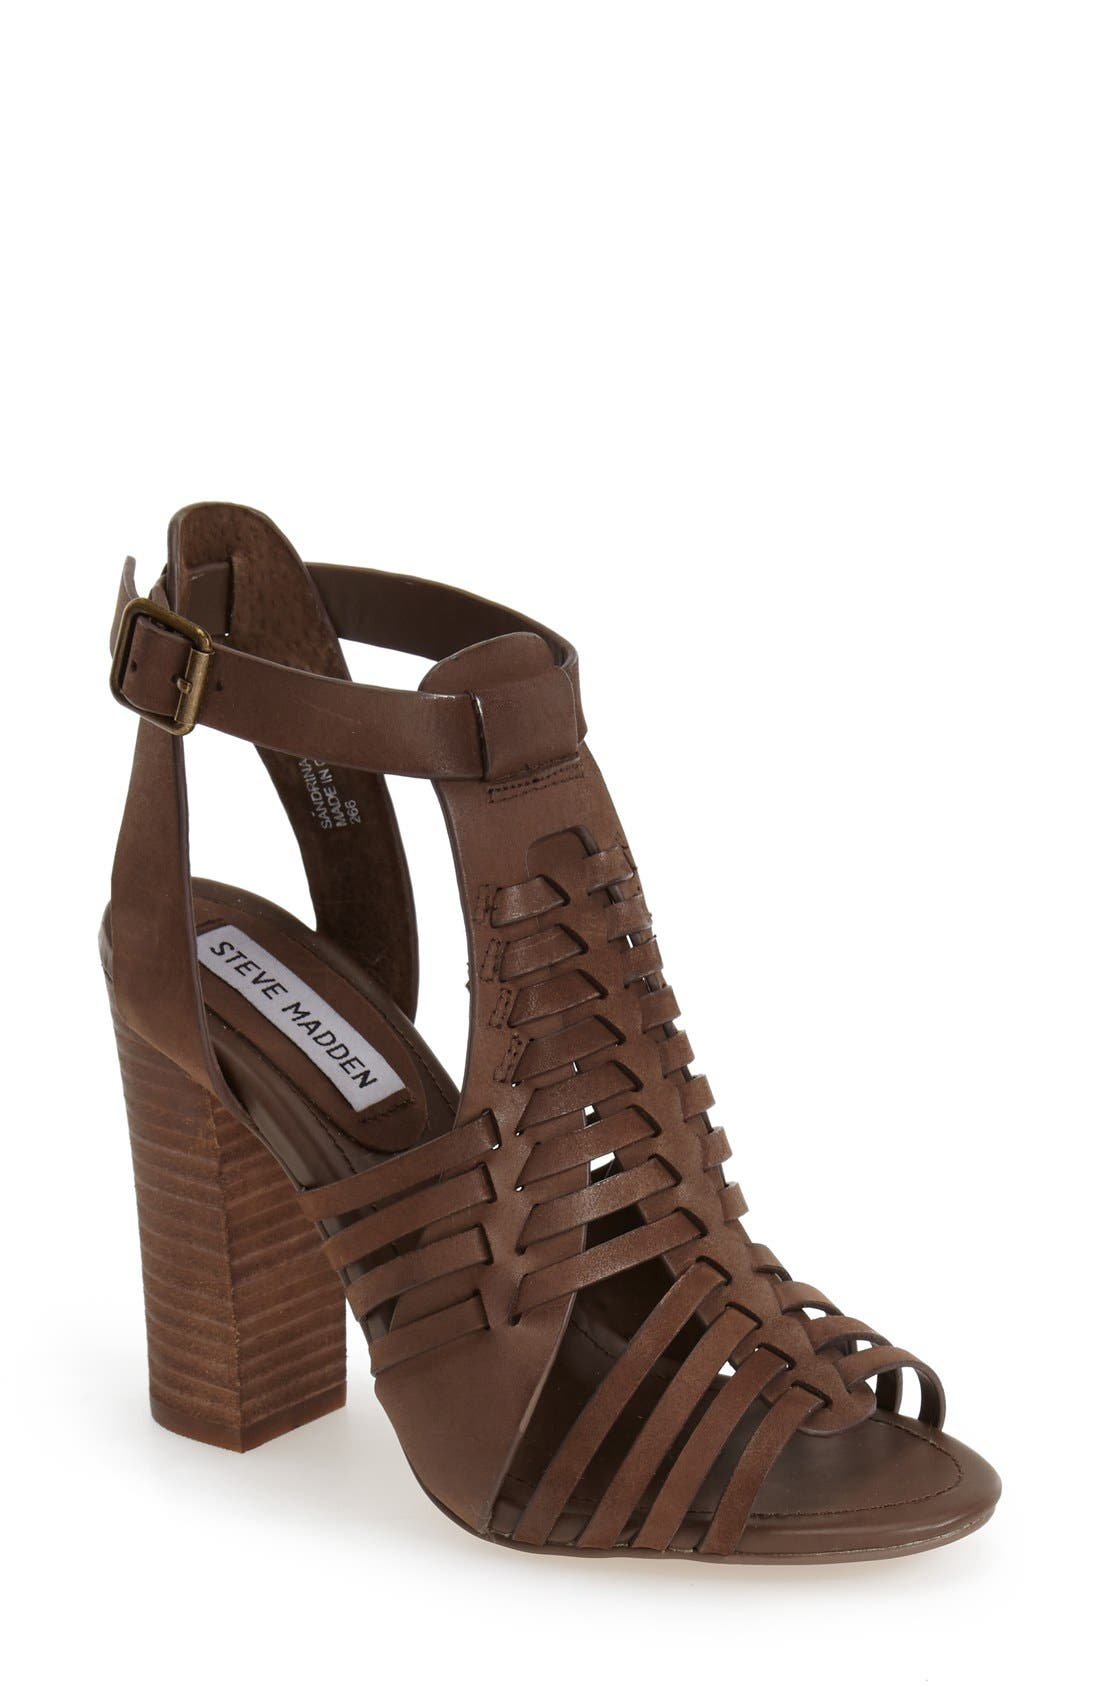 Alternate Image 1 Selected - Steve Madden 'Sandrina' Huarache Sandal (Women)